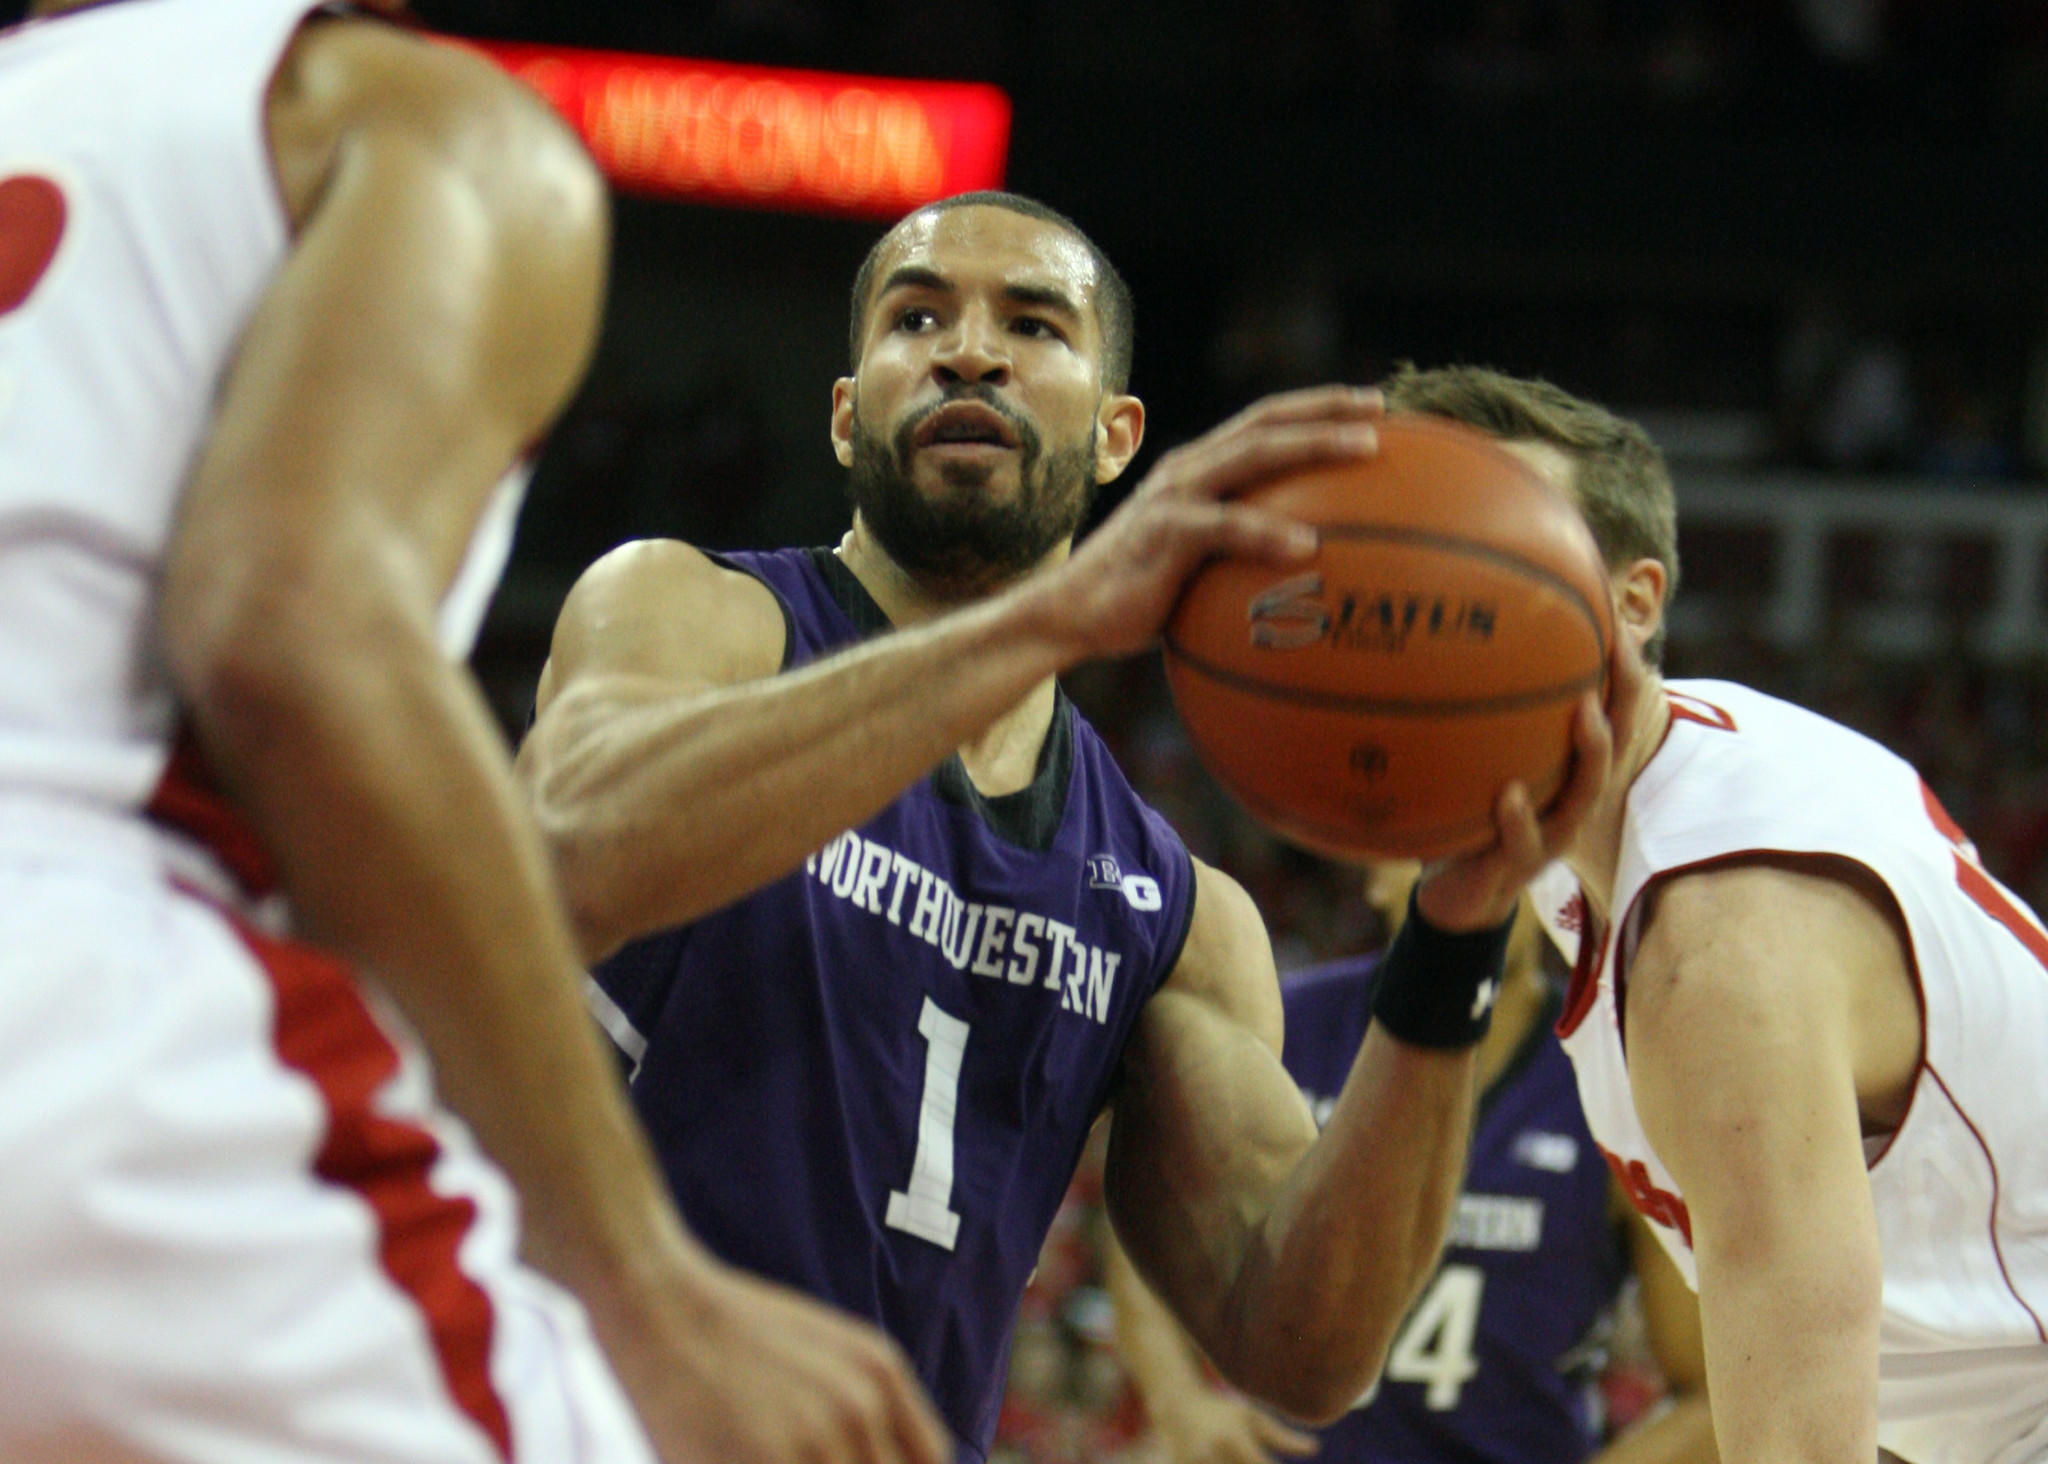 Northwestern guard Drew Crawford looks to pass against Wisconsin during the first half at the Kohl Center.